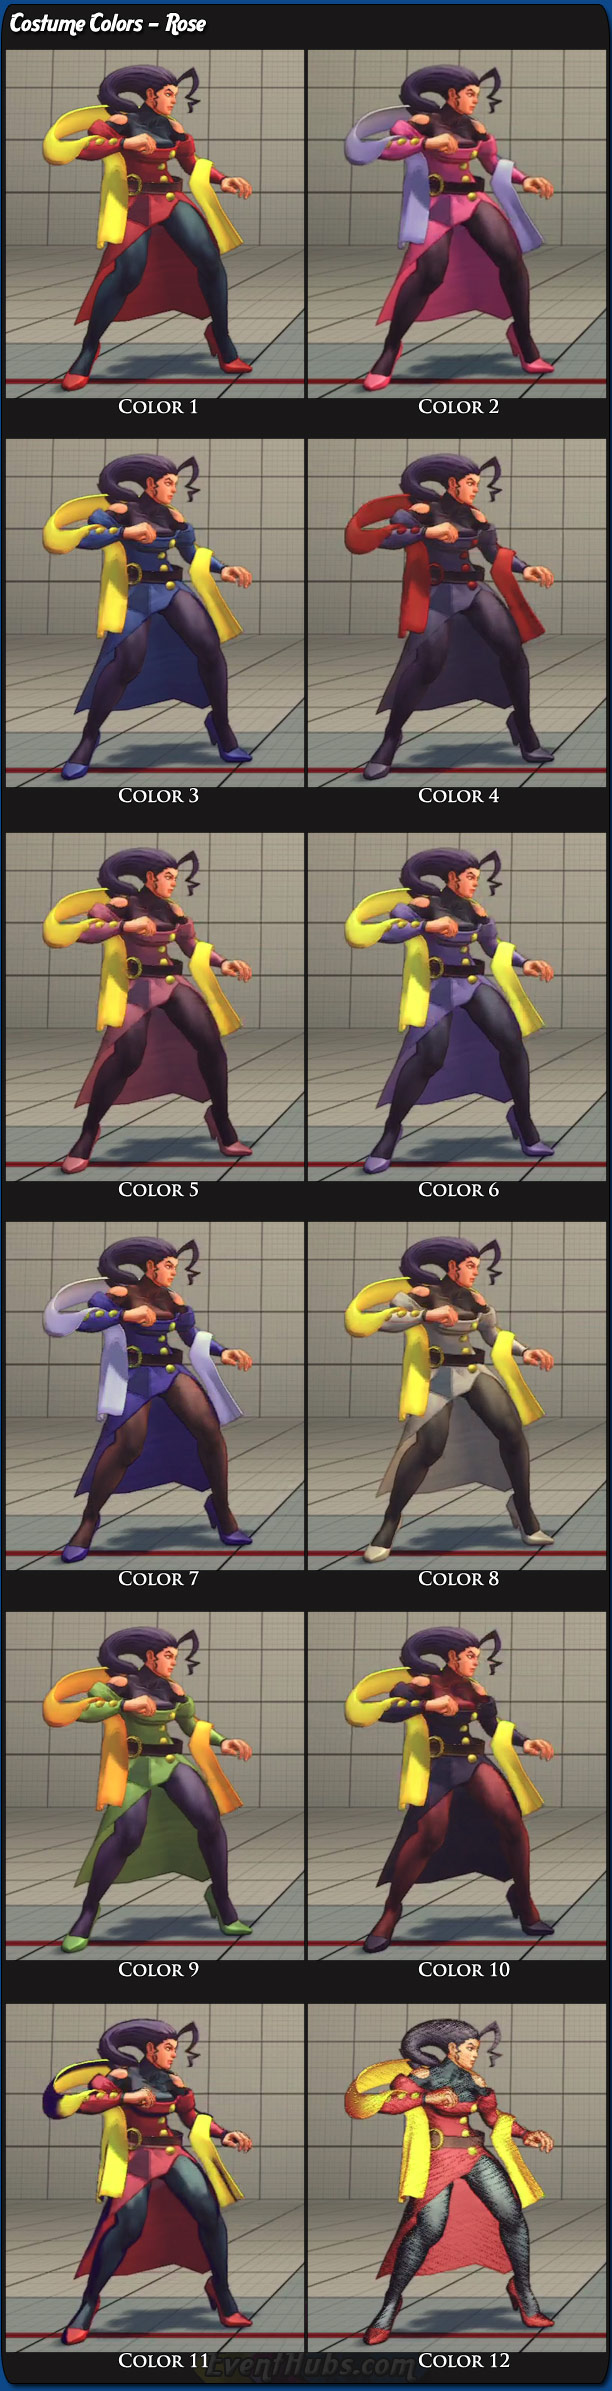 Rose's main costume colors for Super Street Fighter 4